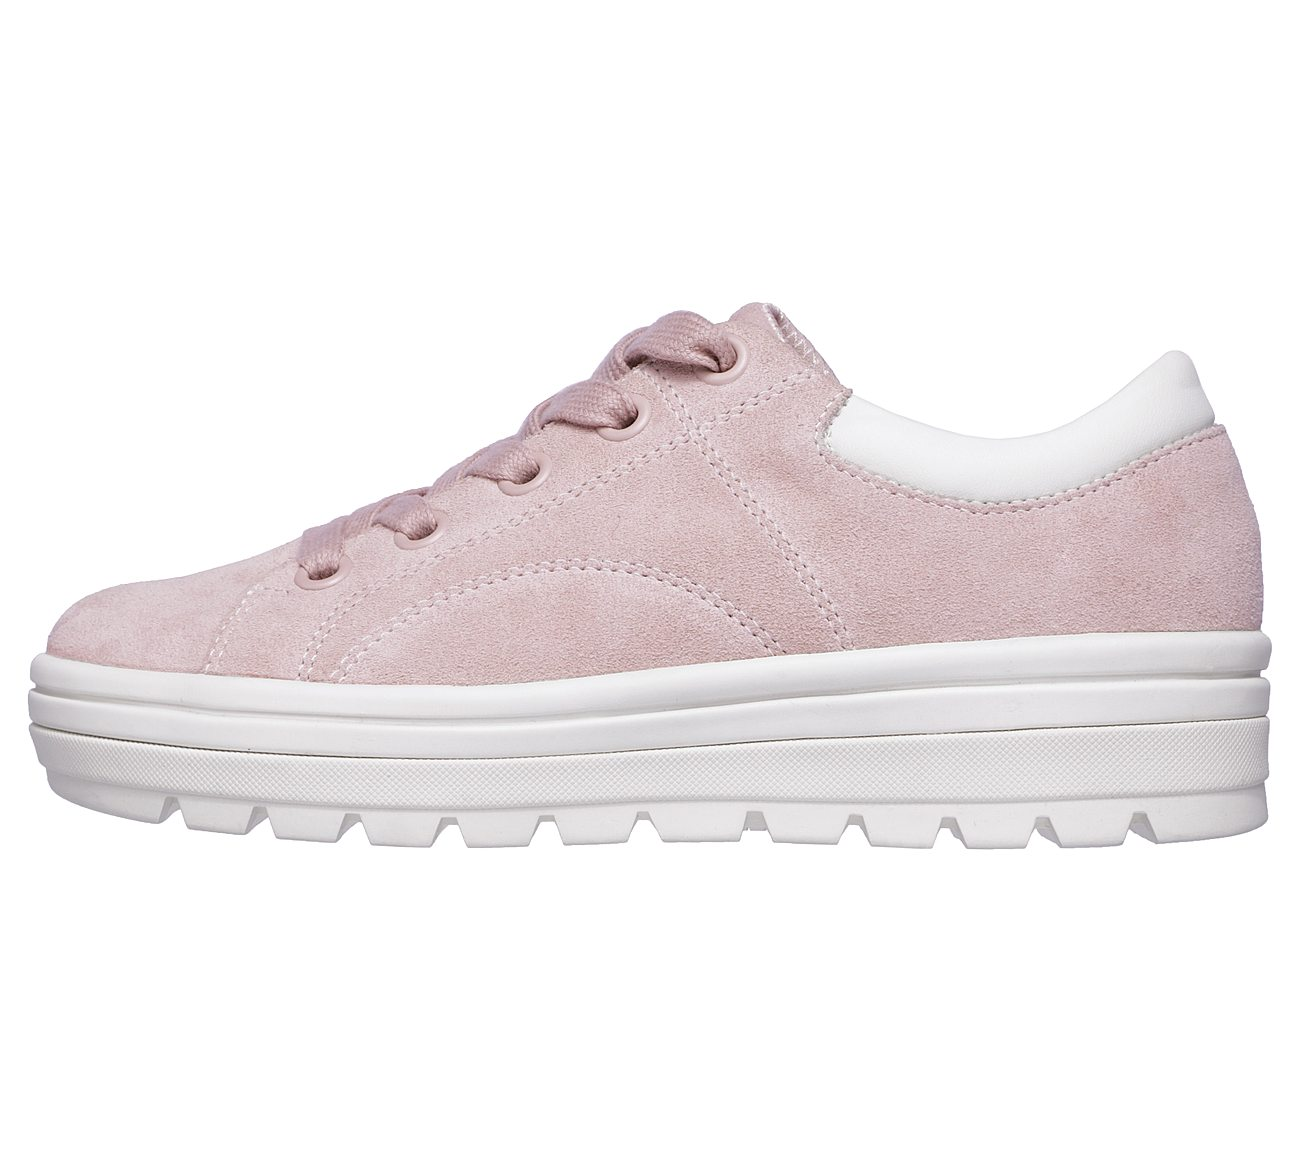 a1e0231284a Buy SKECHERS Street Cleat - Back Again SKECHER Street Shoes only  62.00